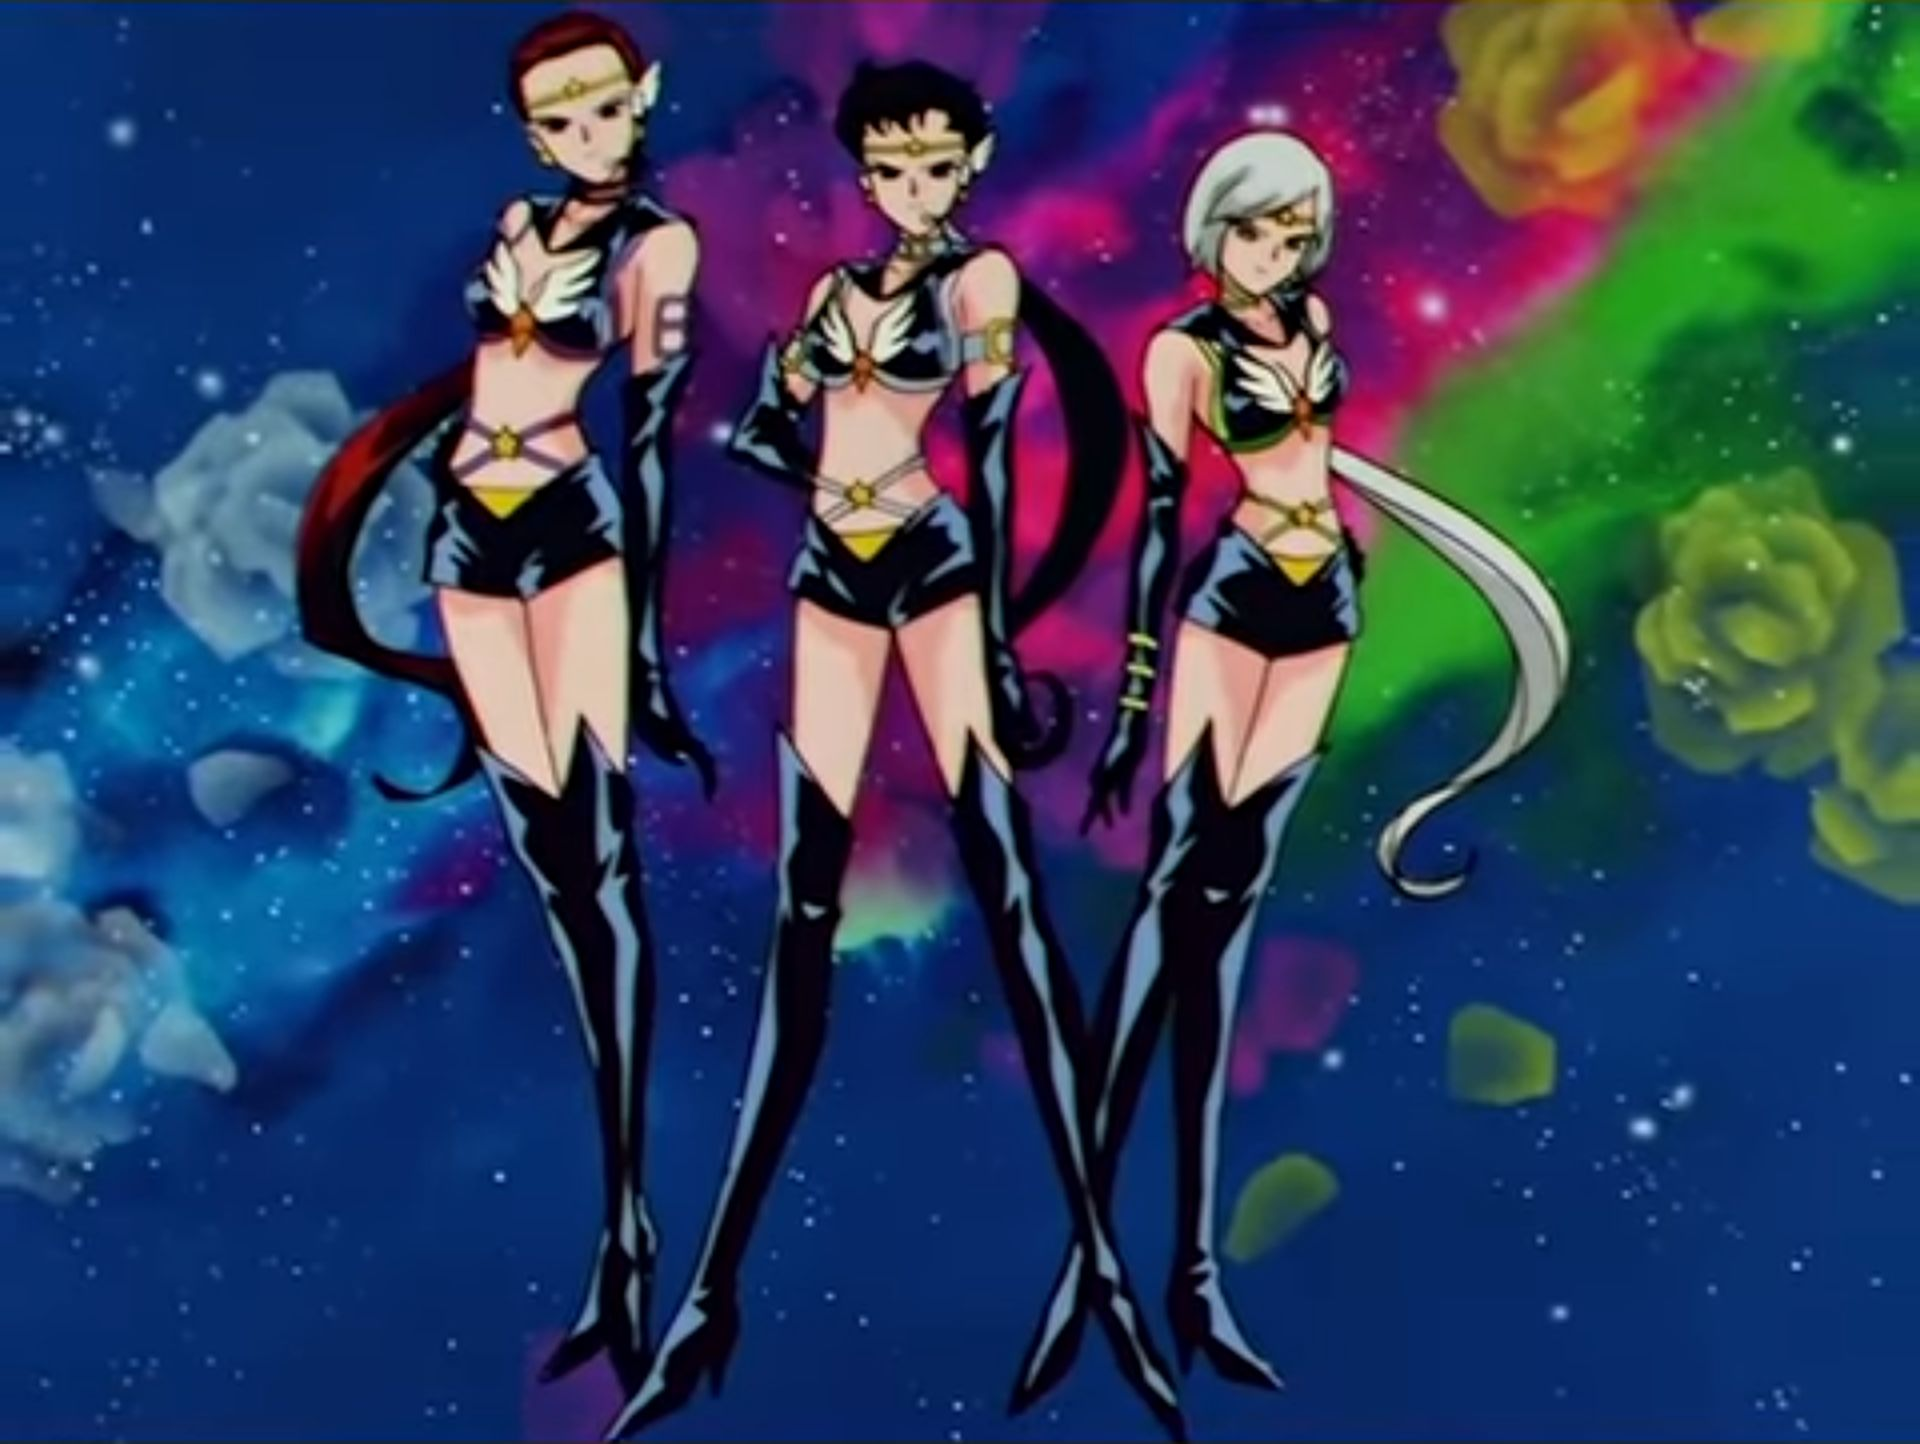 First Look at SAILOR MOON SAILOR STARS Dub and More Casting